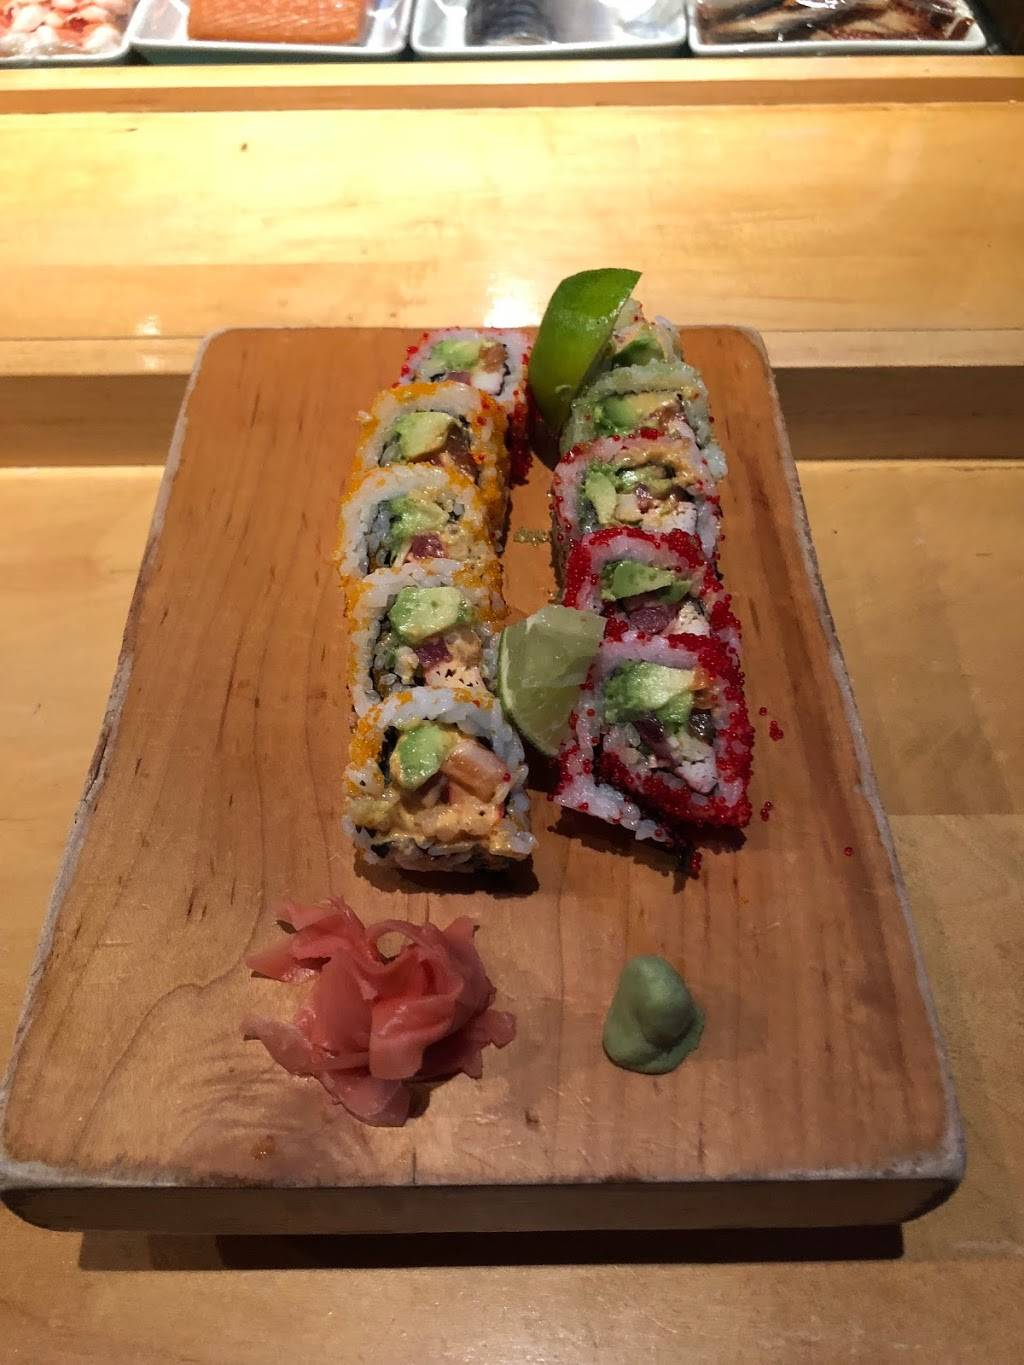 Cafe Sushi | restaurant | 1342 N Wells St, Chicago, IL 60610, USA | 3123370700 OR +1 312-337-0700